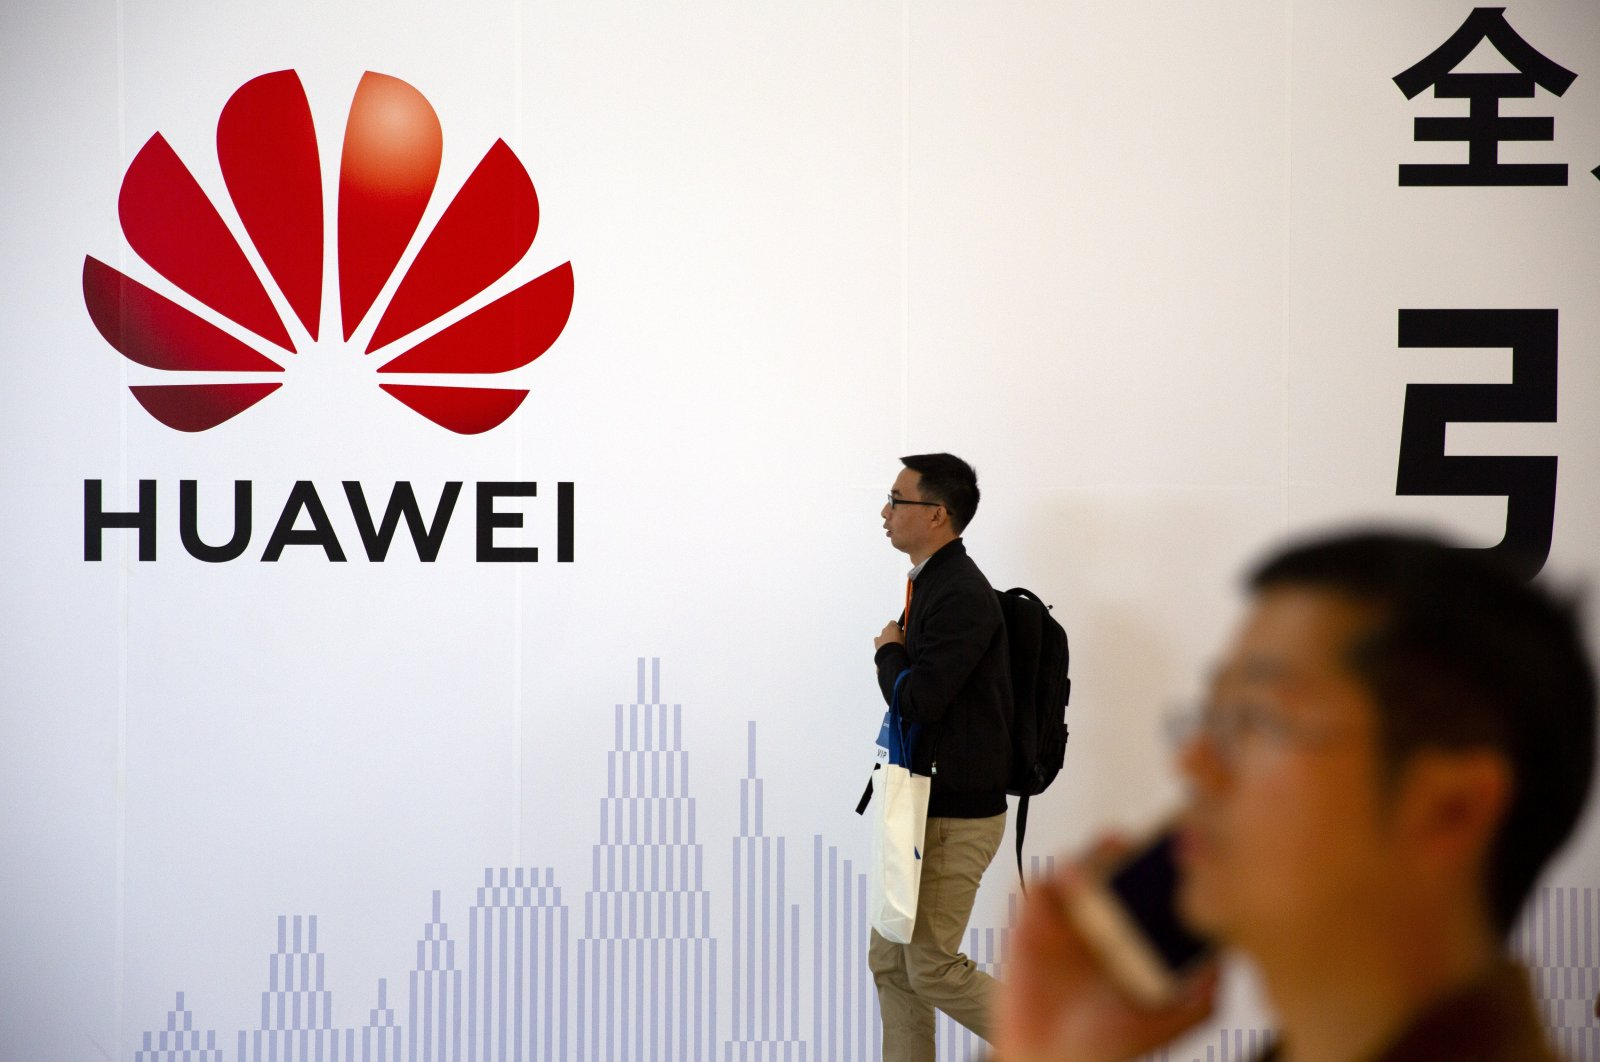 A man uses his smartphone as he stands near a billboard for Chinese technology firm Huawei at the PT Expo in Beijing, China on Oct. 31, 2019. (AP Photo)